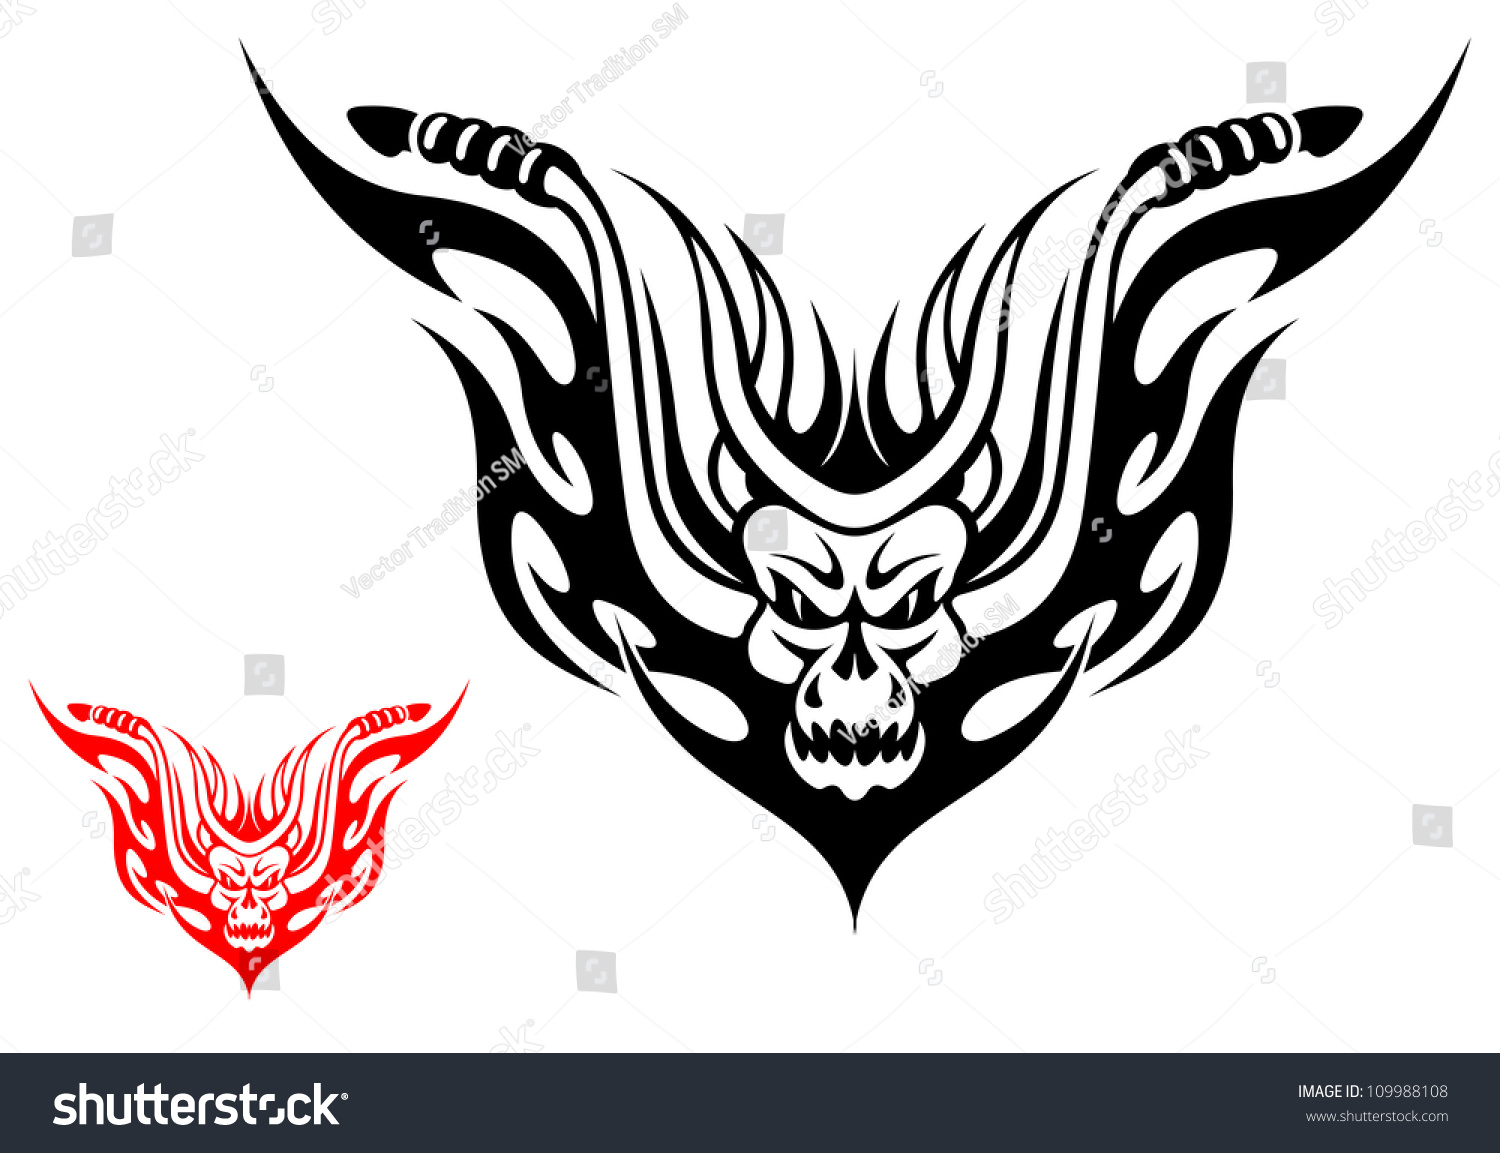 Motorcycle clip art with flames - Tribal Biker Motorcycle Tattoo With Fire Flames Such A Logo Jpeg Version Also Available